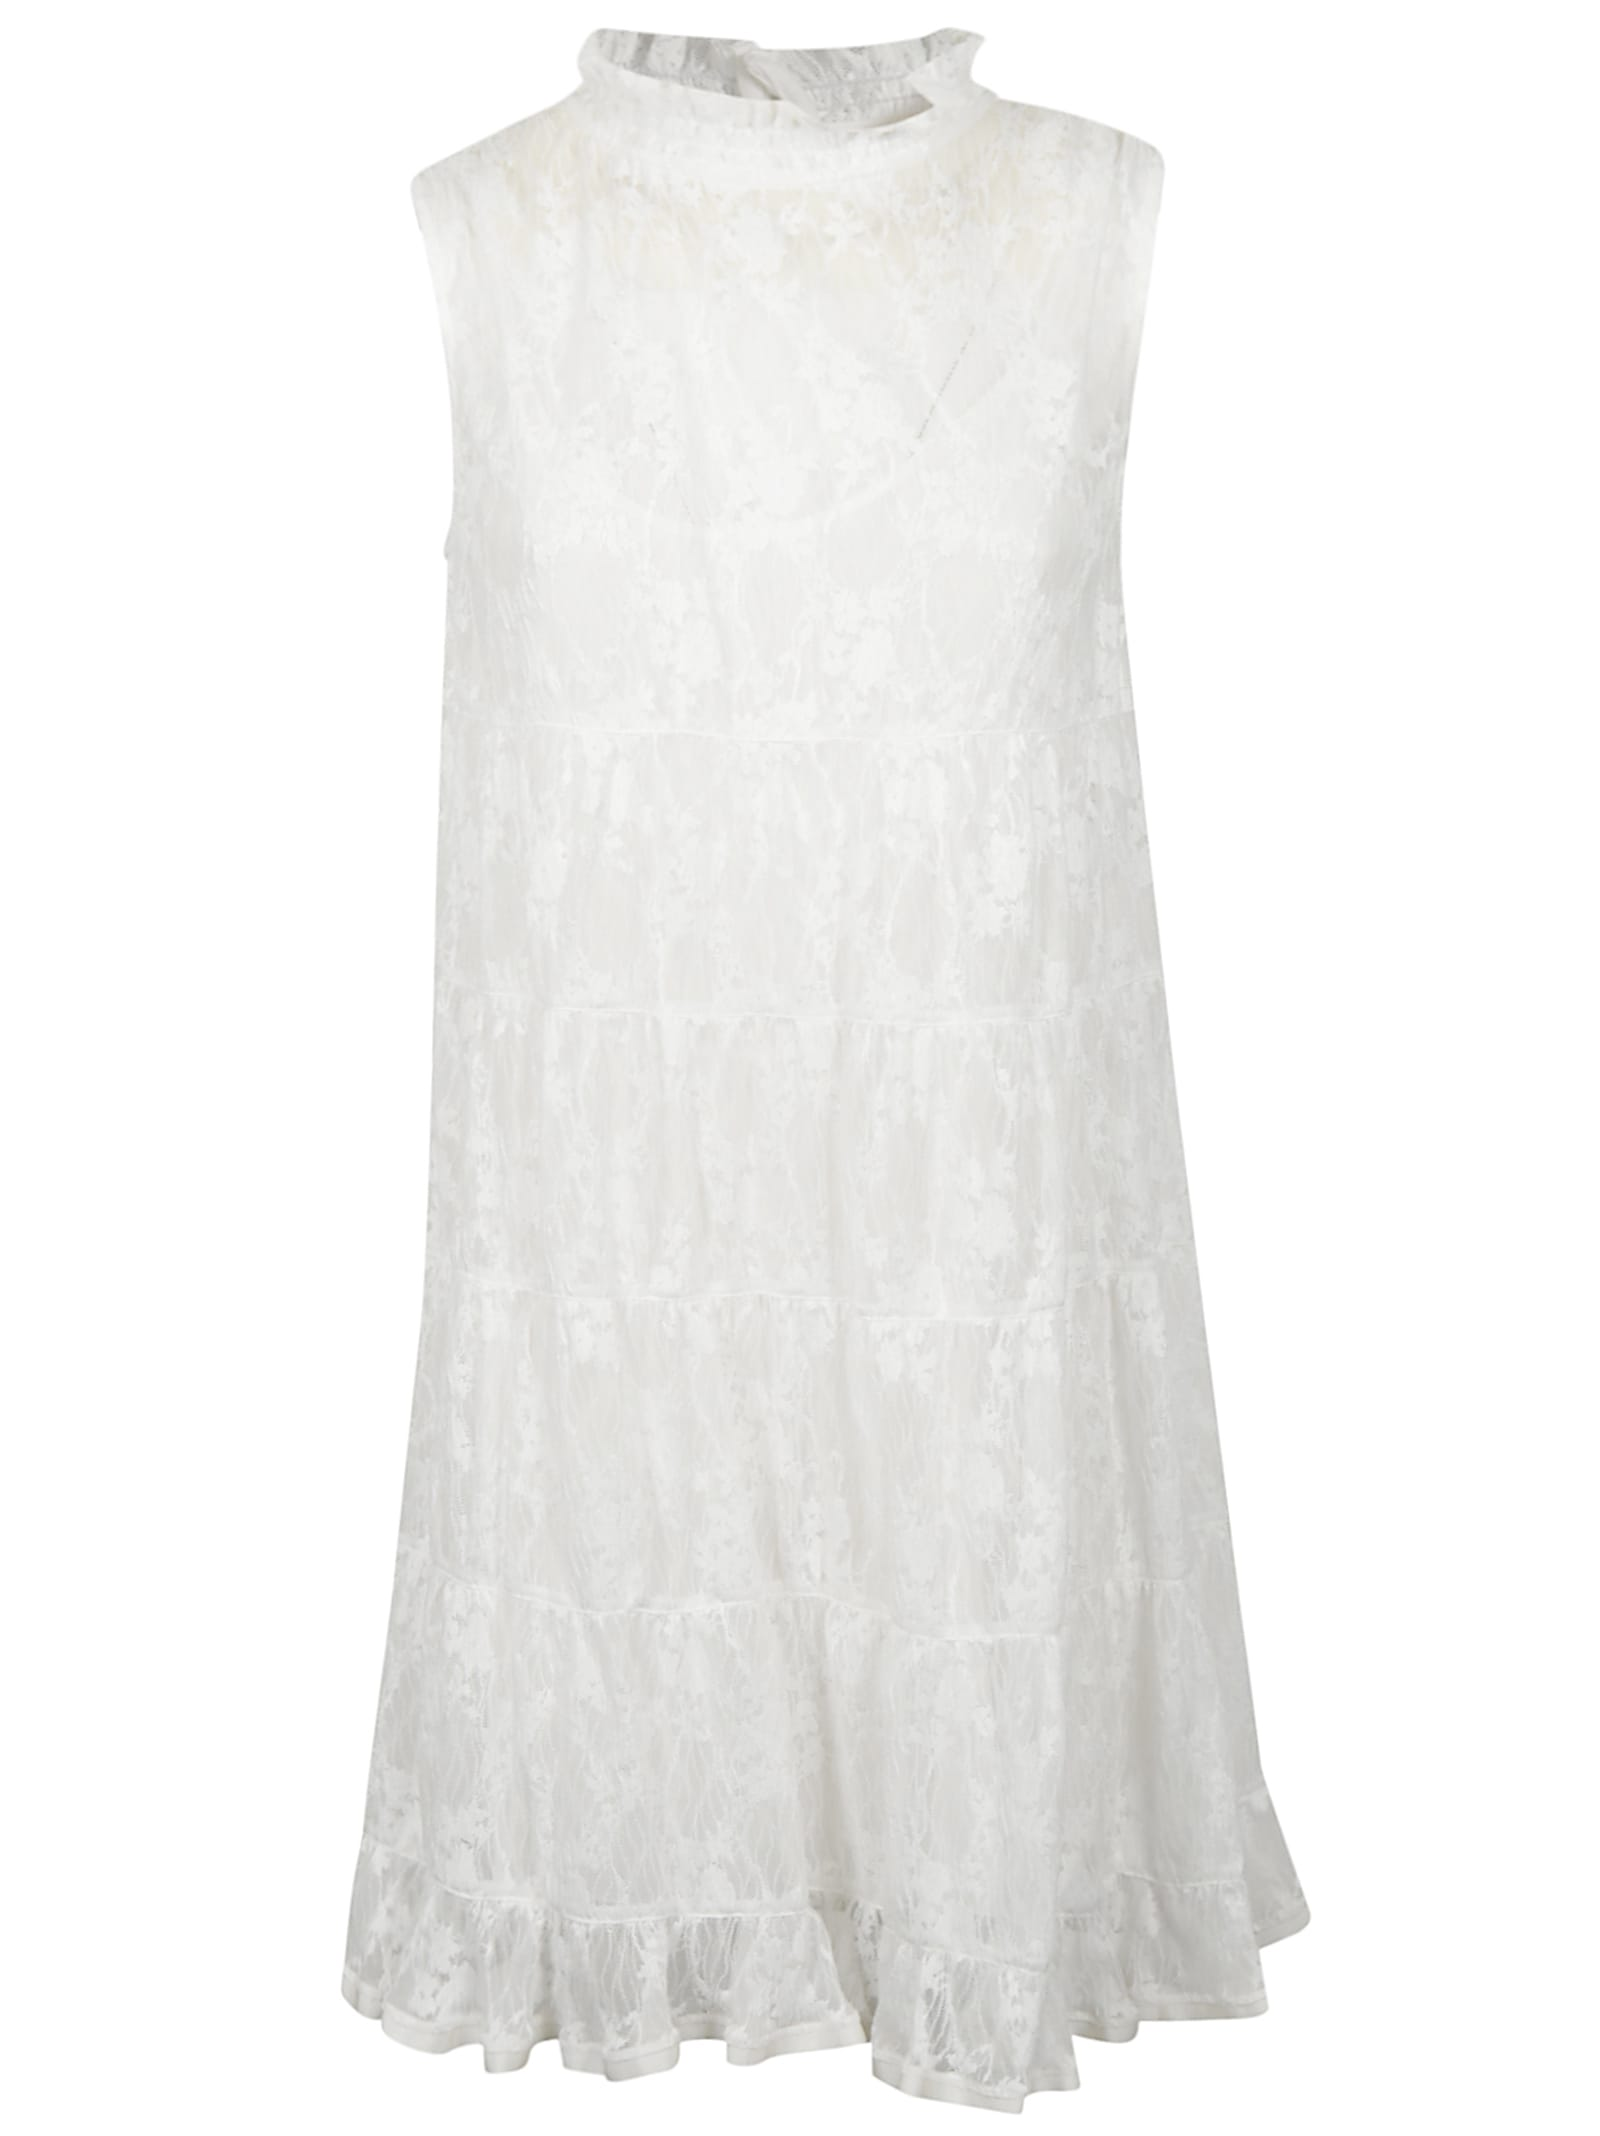 See by Chloé Ruffled Laced Sleeveless Dress